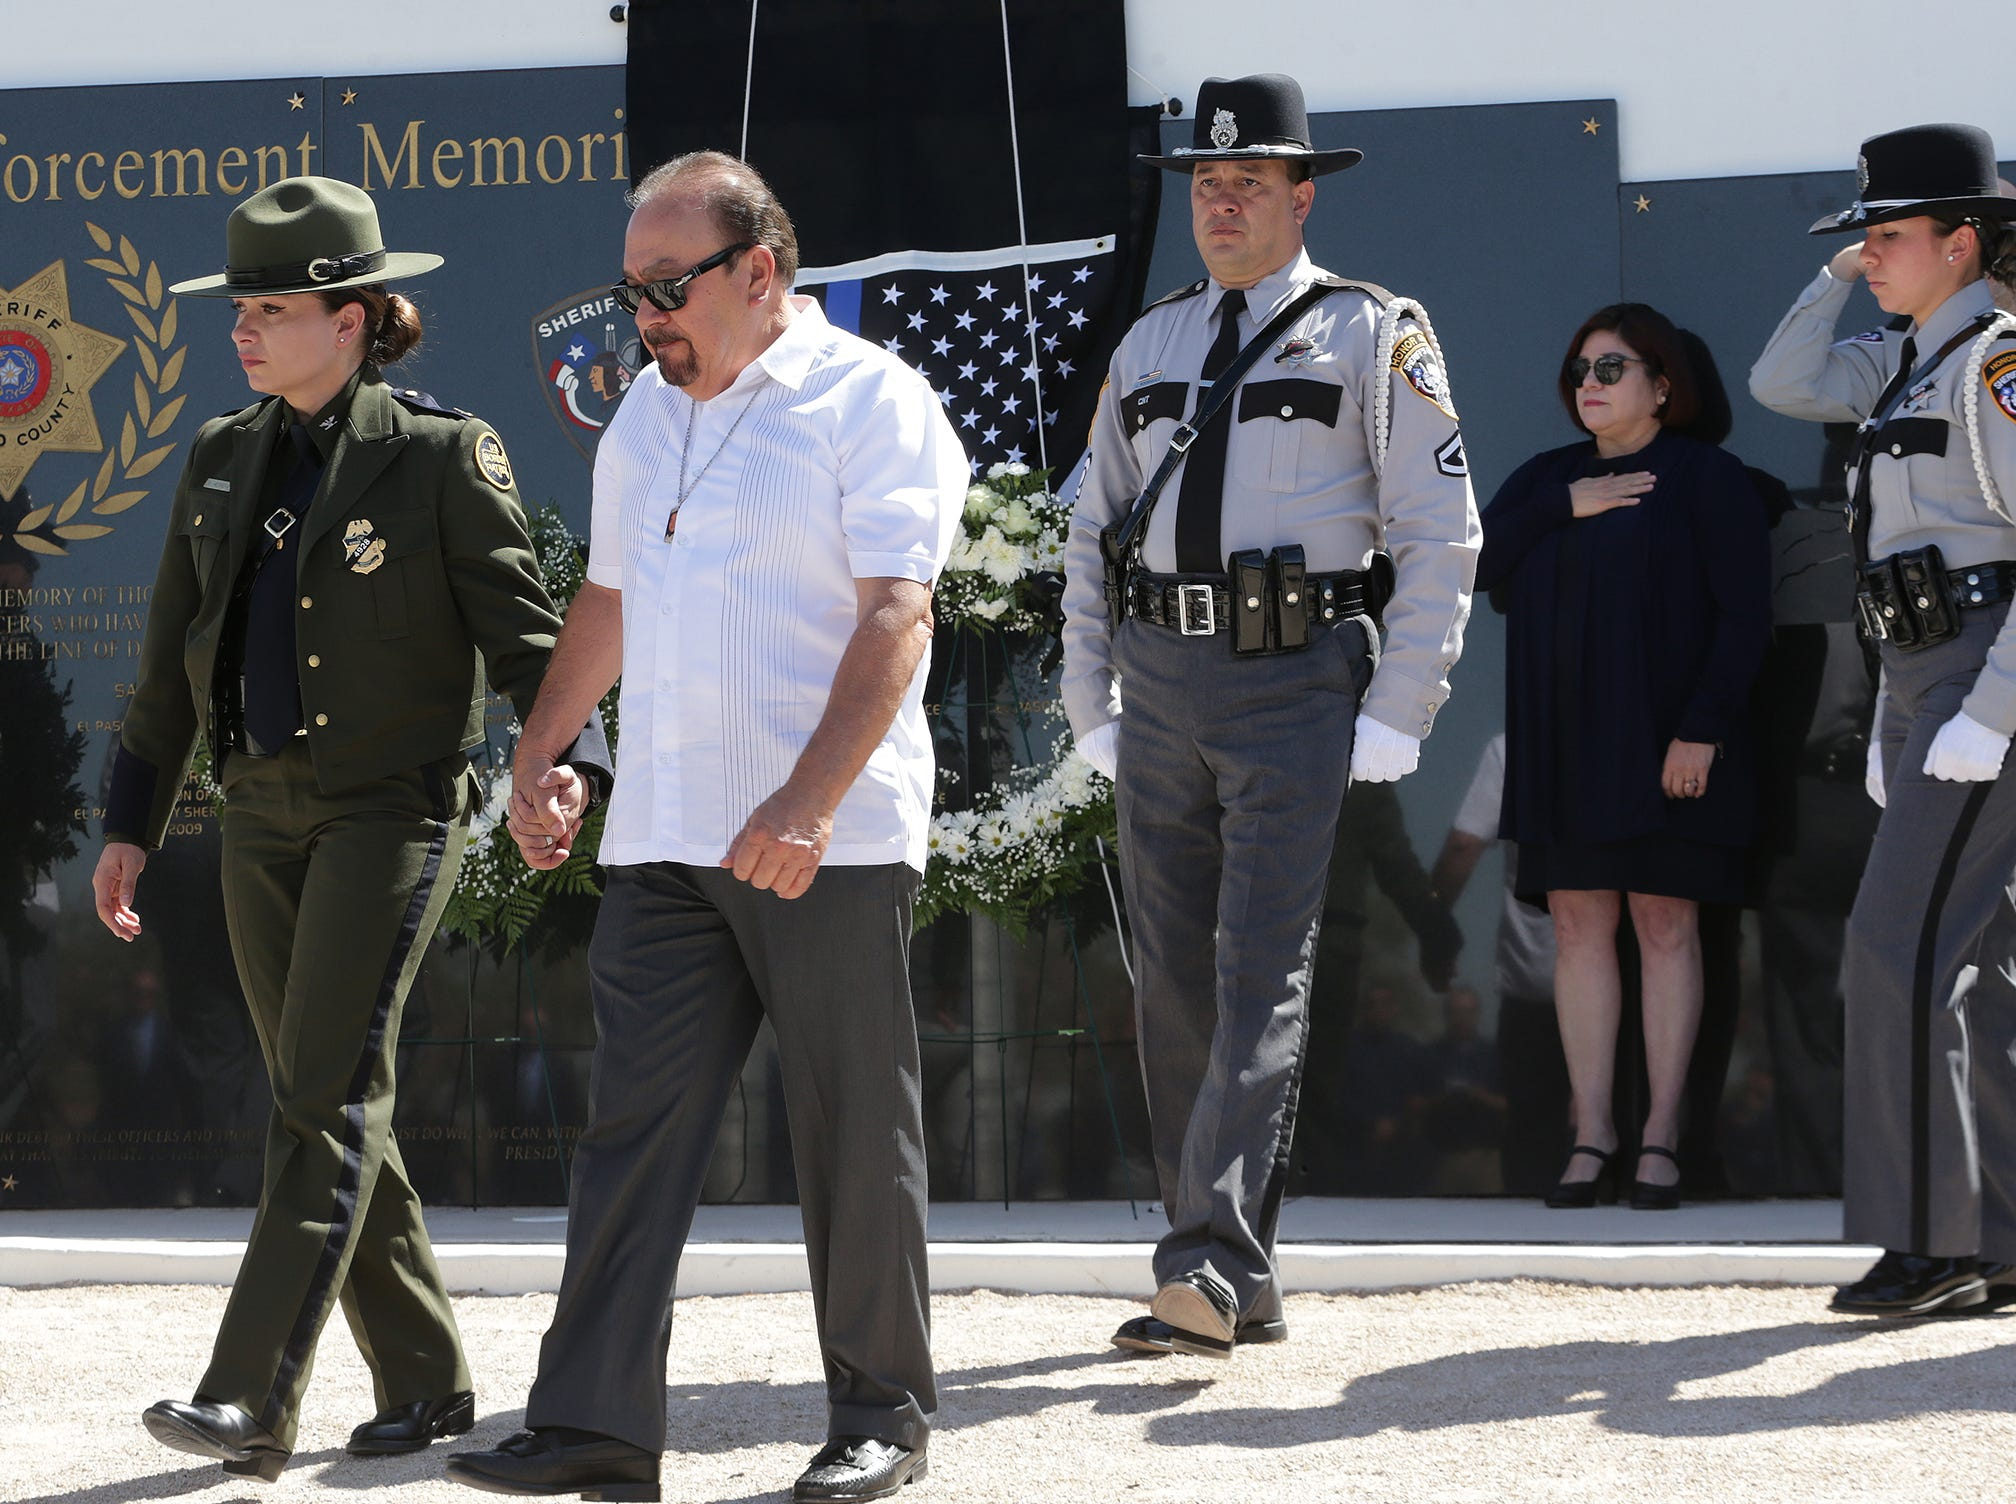 Luis Herrera is led from the memorial at the El Paso Sheriff's Office Tuesday after revealing his son Dep. Peter Herrera's name on the memorial.